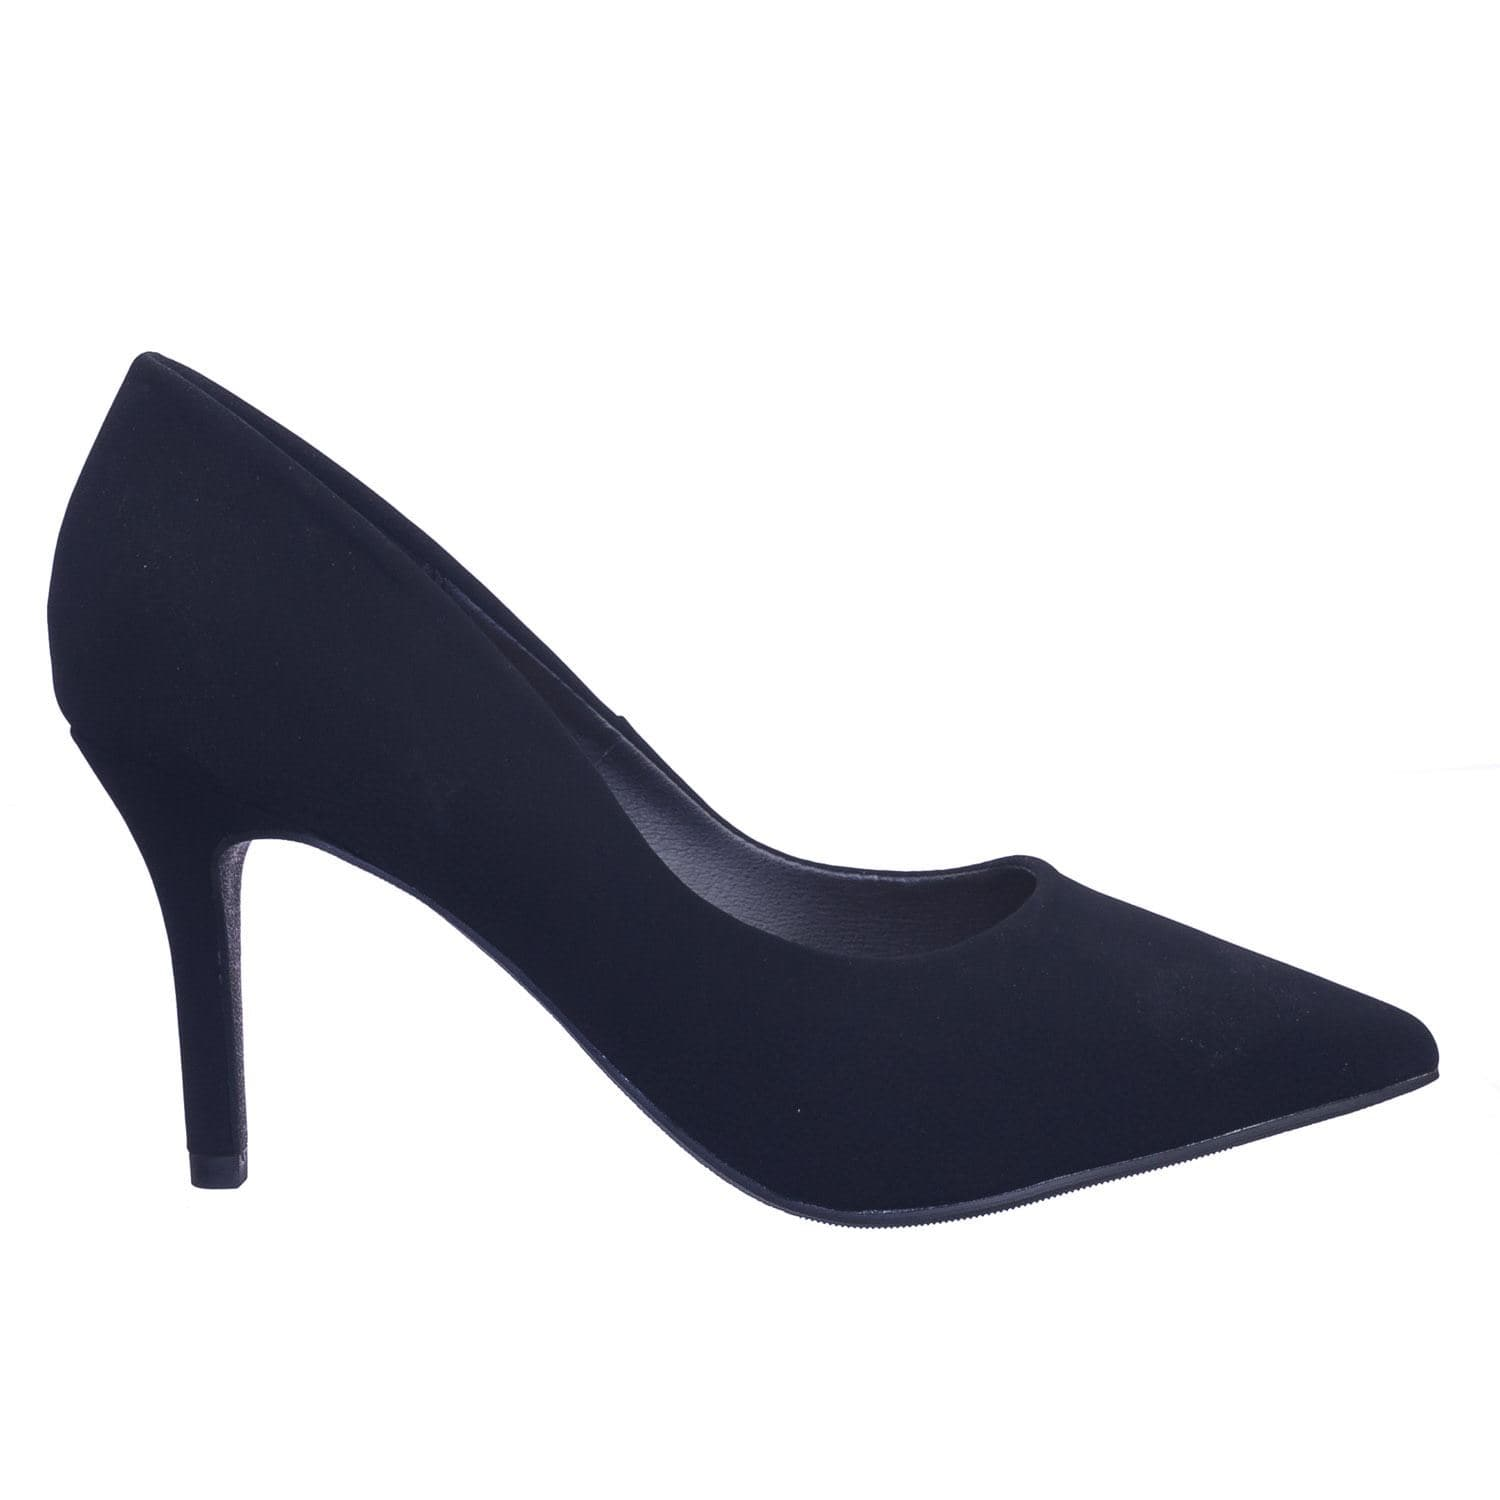 Libby BlkNbpu Extra Comfortable Foam Padded Cushion Pointed Toe High Heel Dress Pump